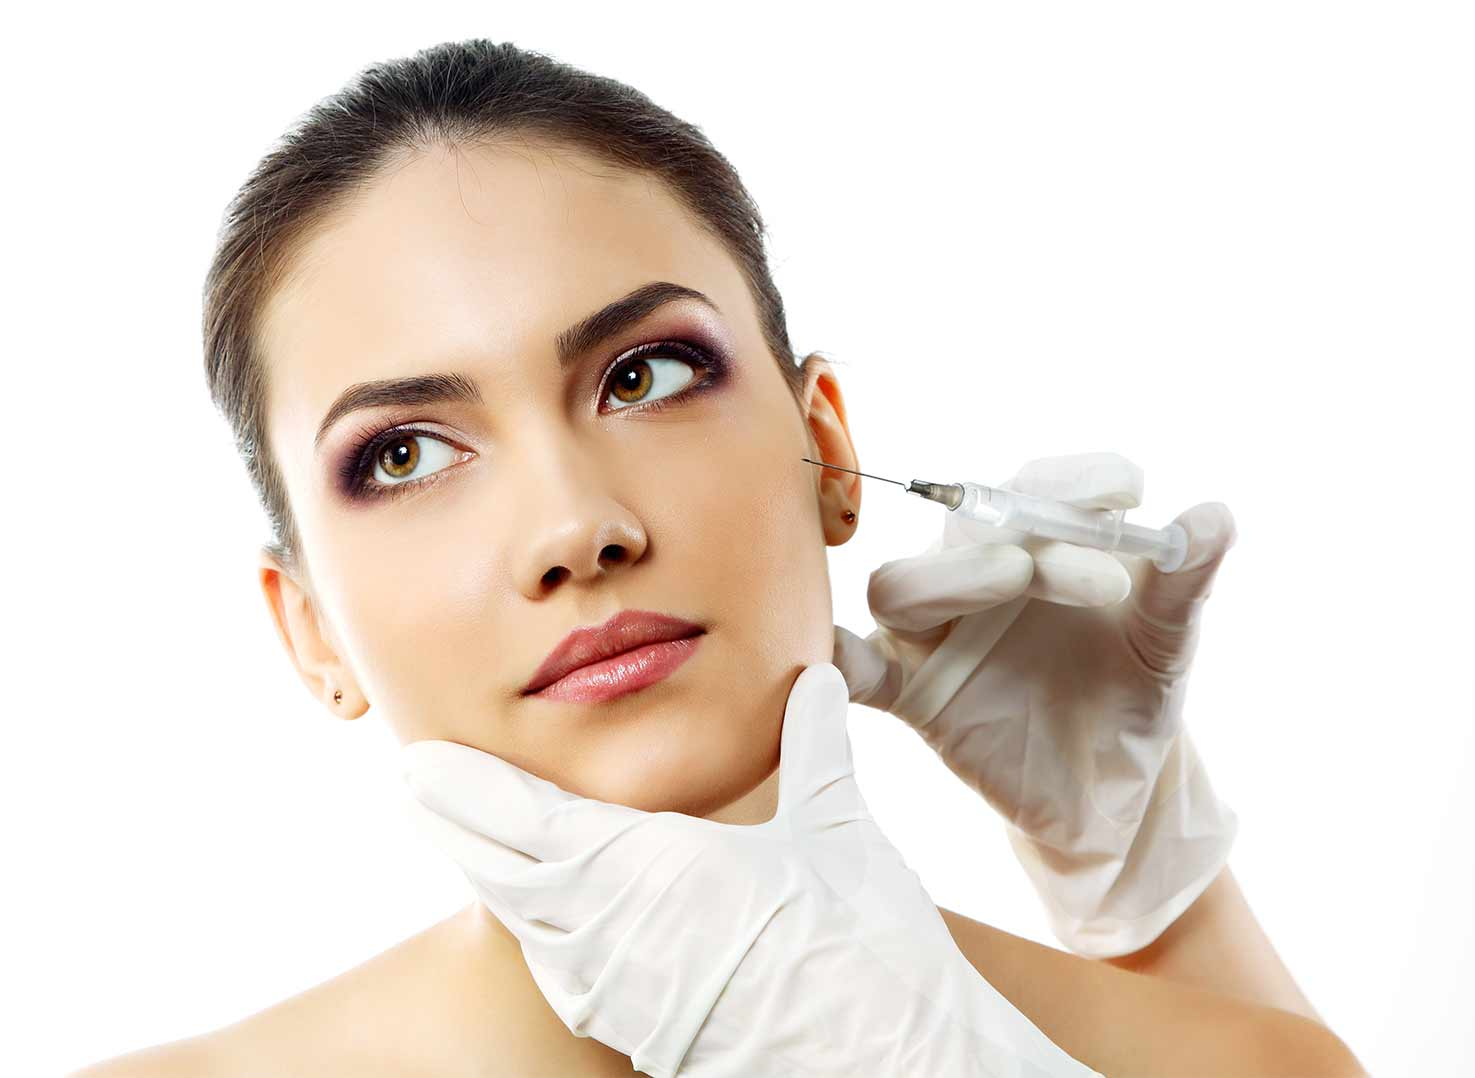 None Surgical Aesthetic Beauty Therapy